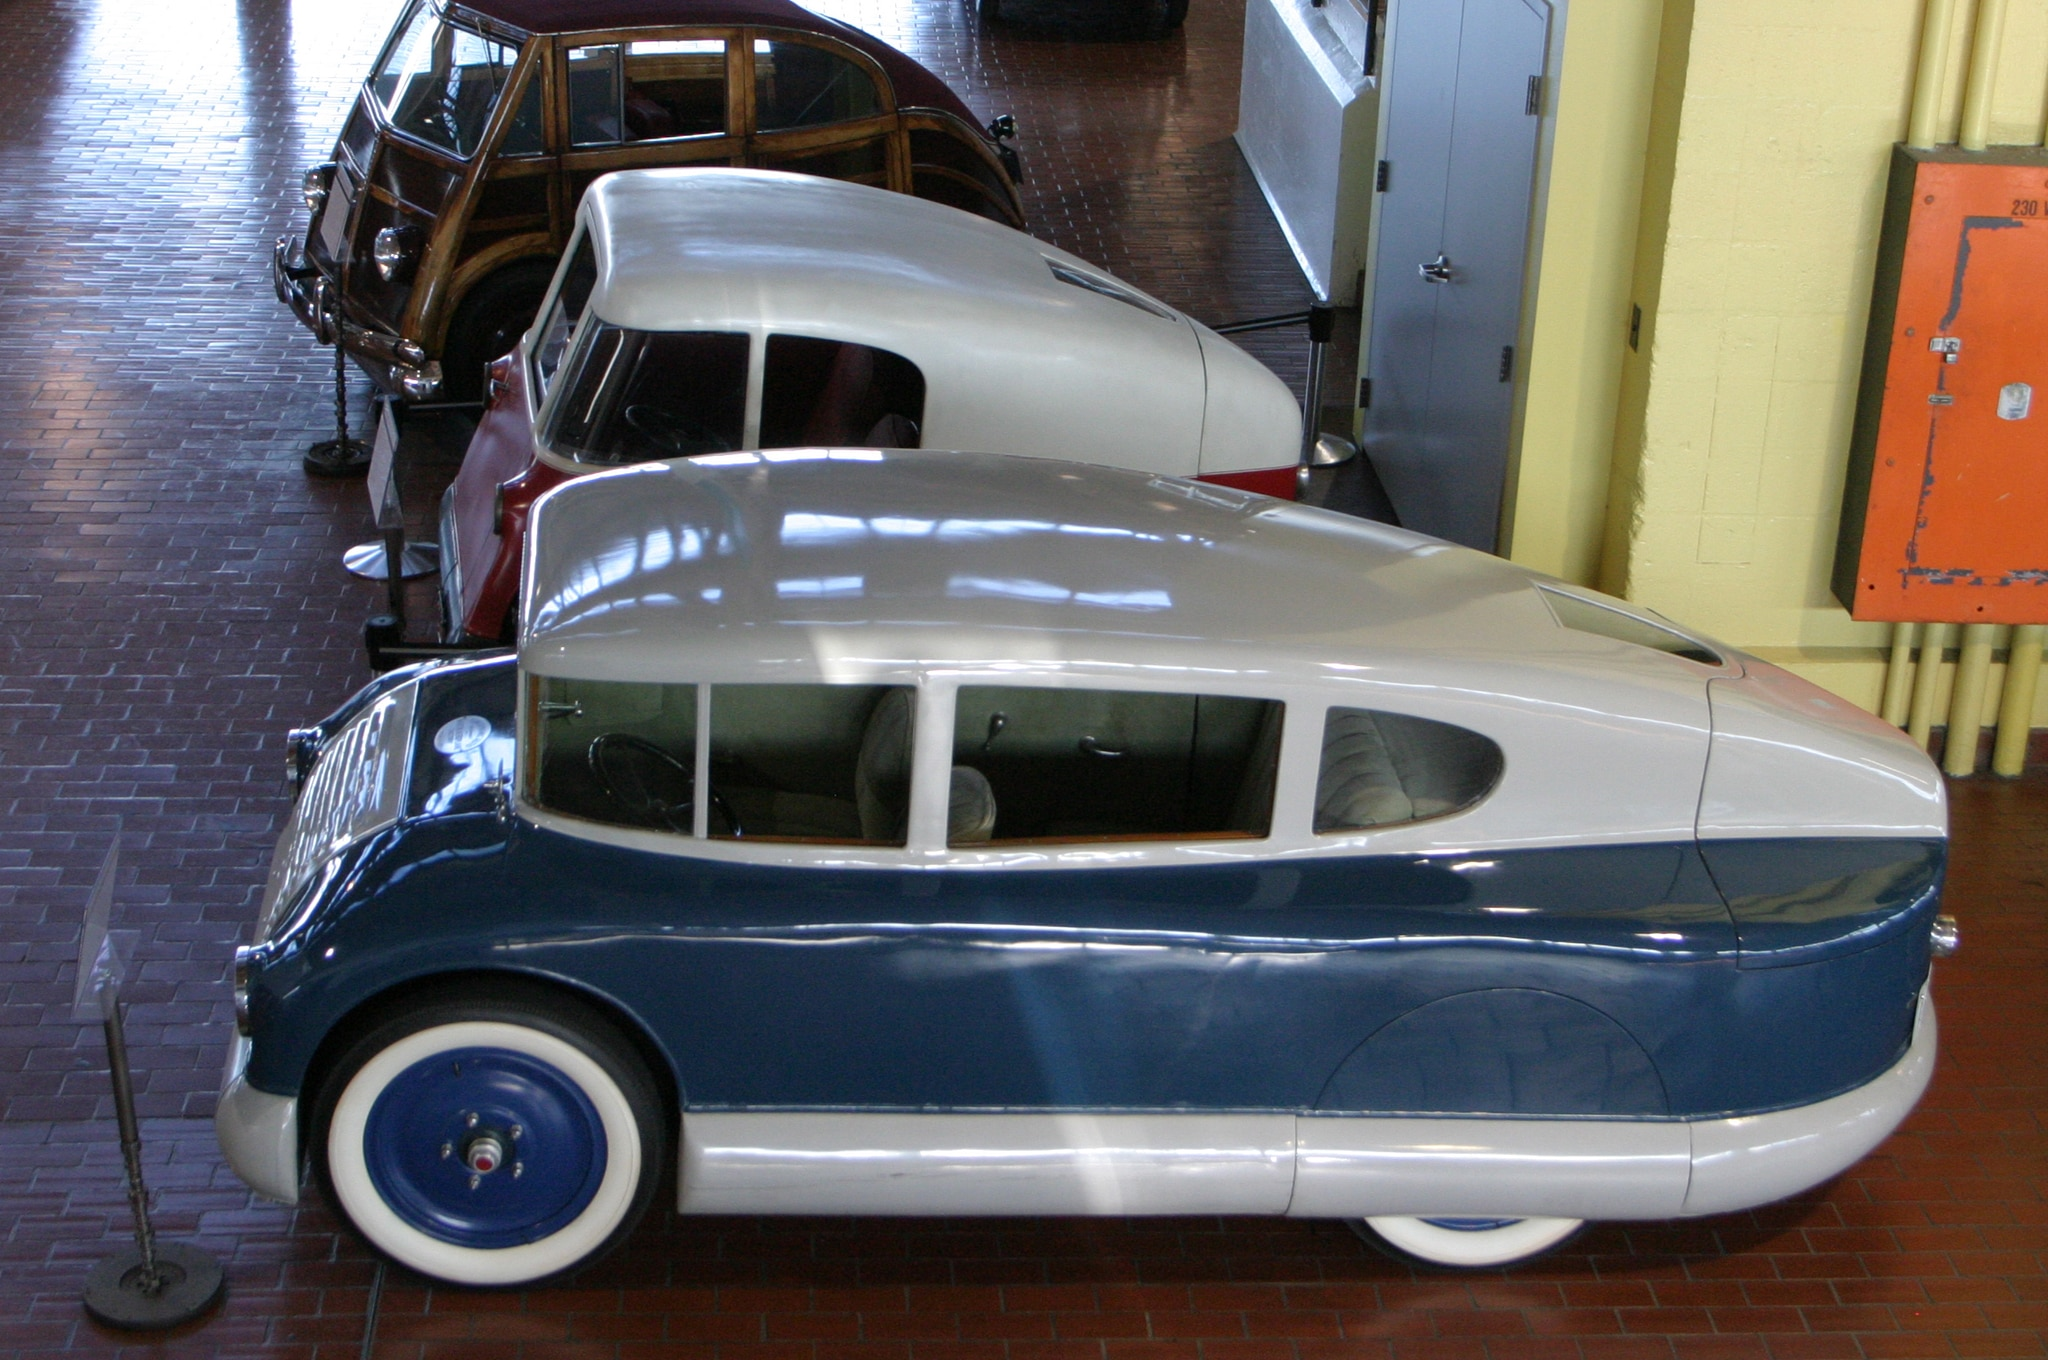 The 10 Nuttiest Vehicles At The Lane Motor Museum